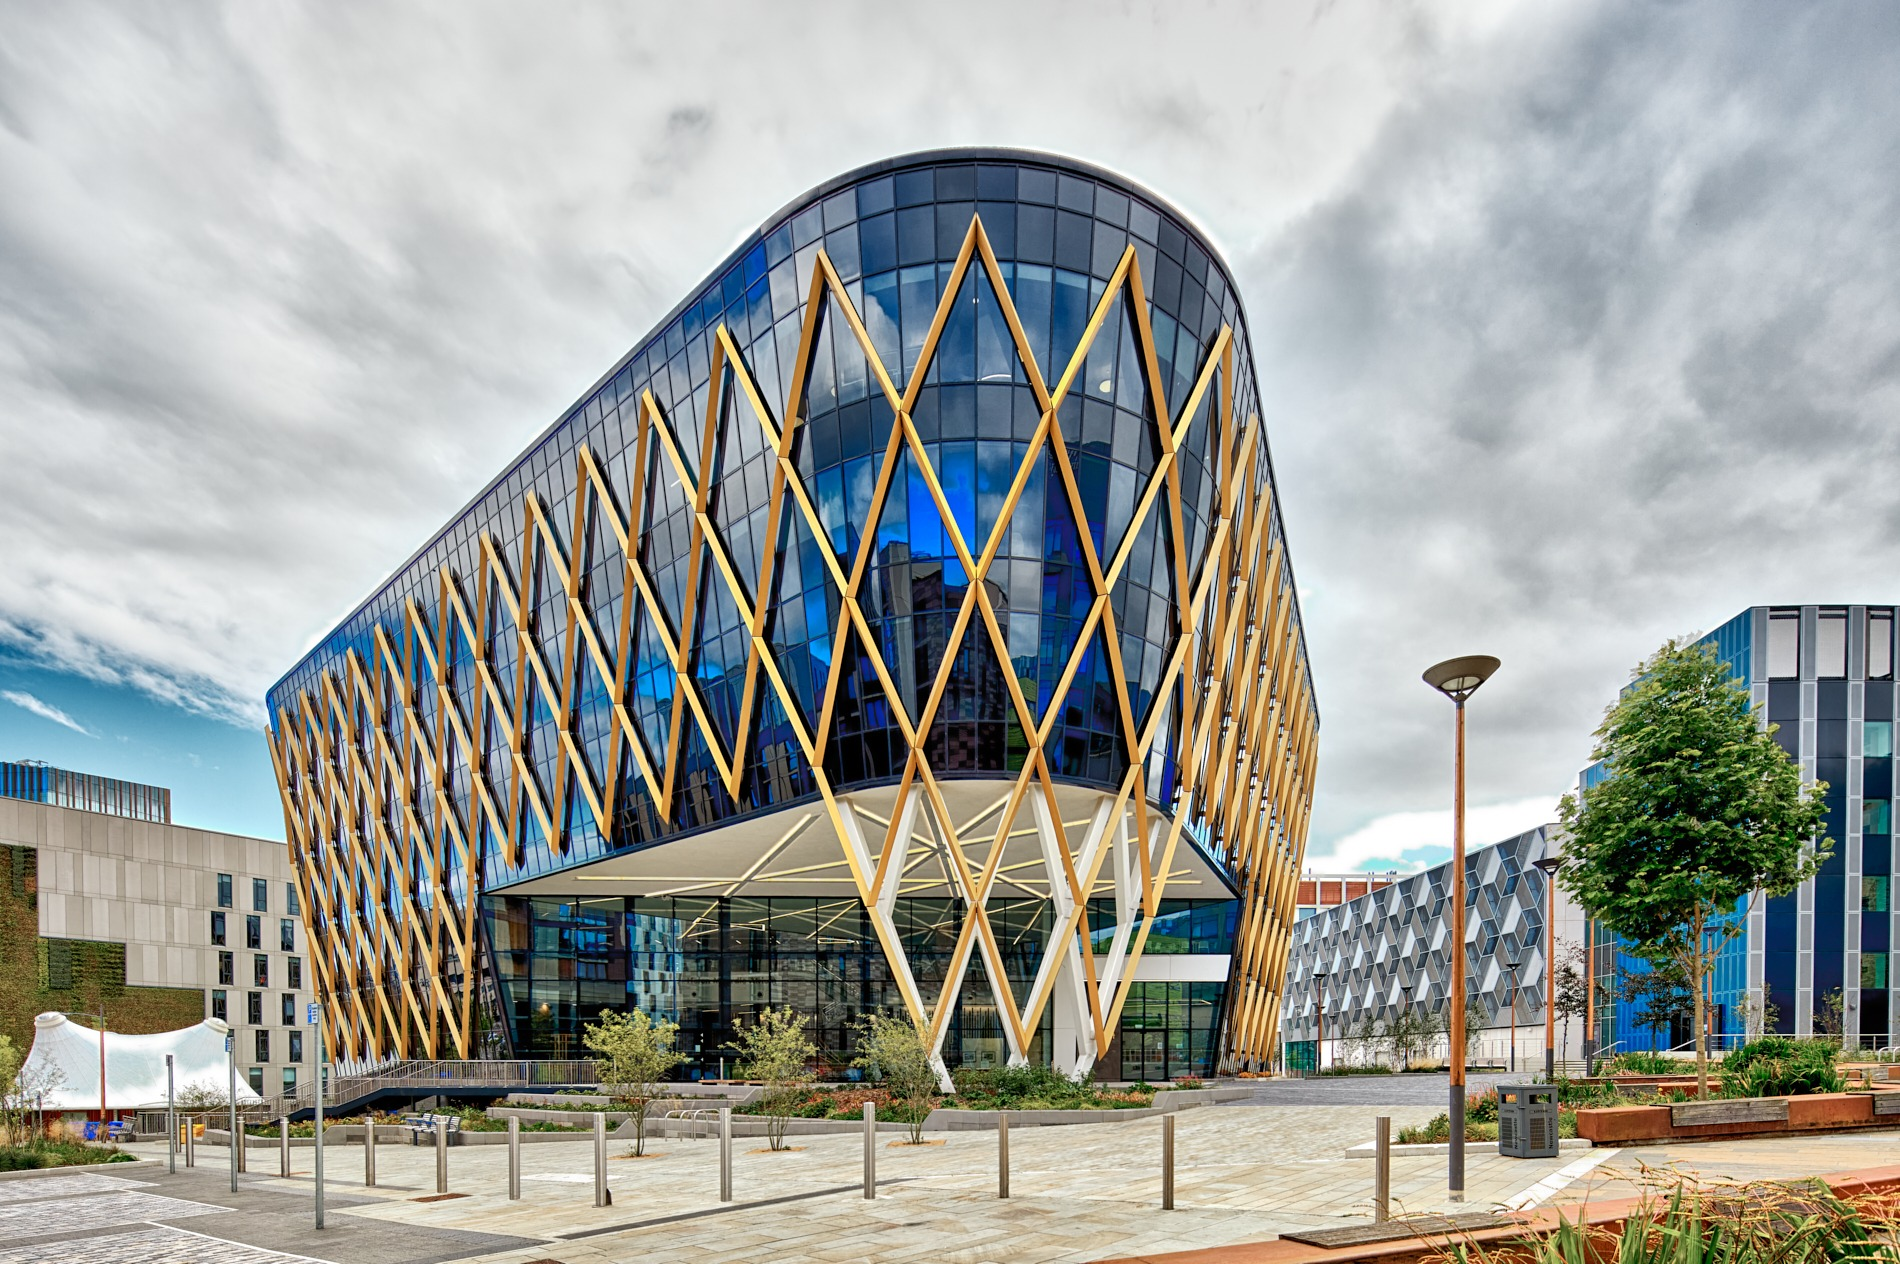 Architectural photography - Image of the Catalyst building at Newcastle Helix